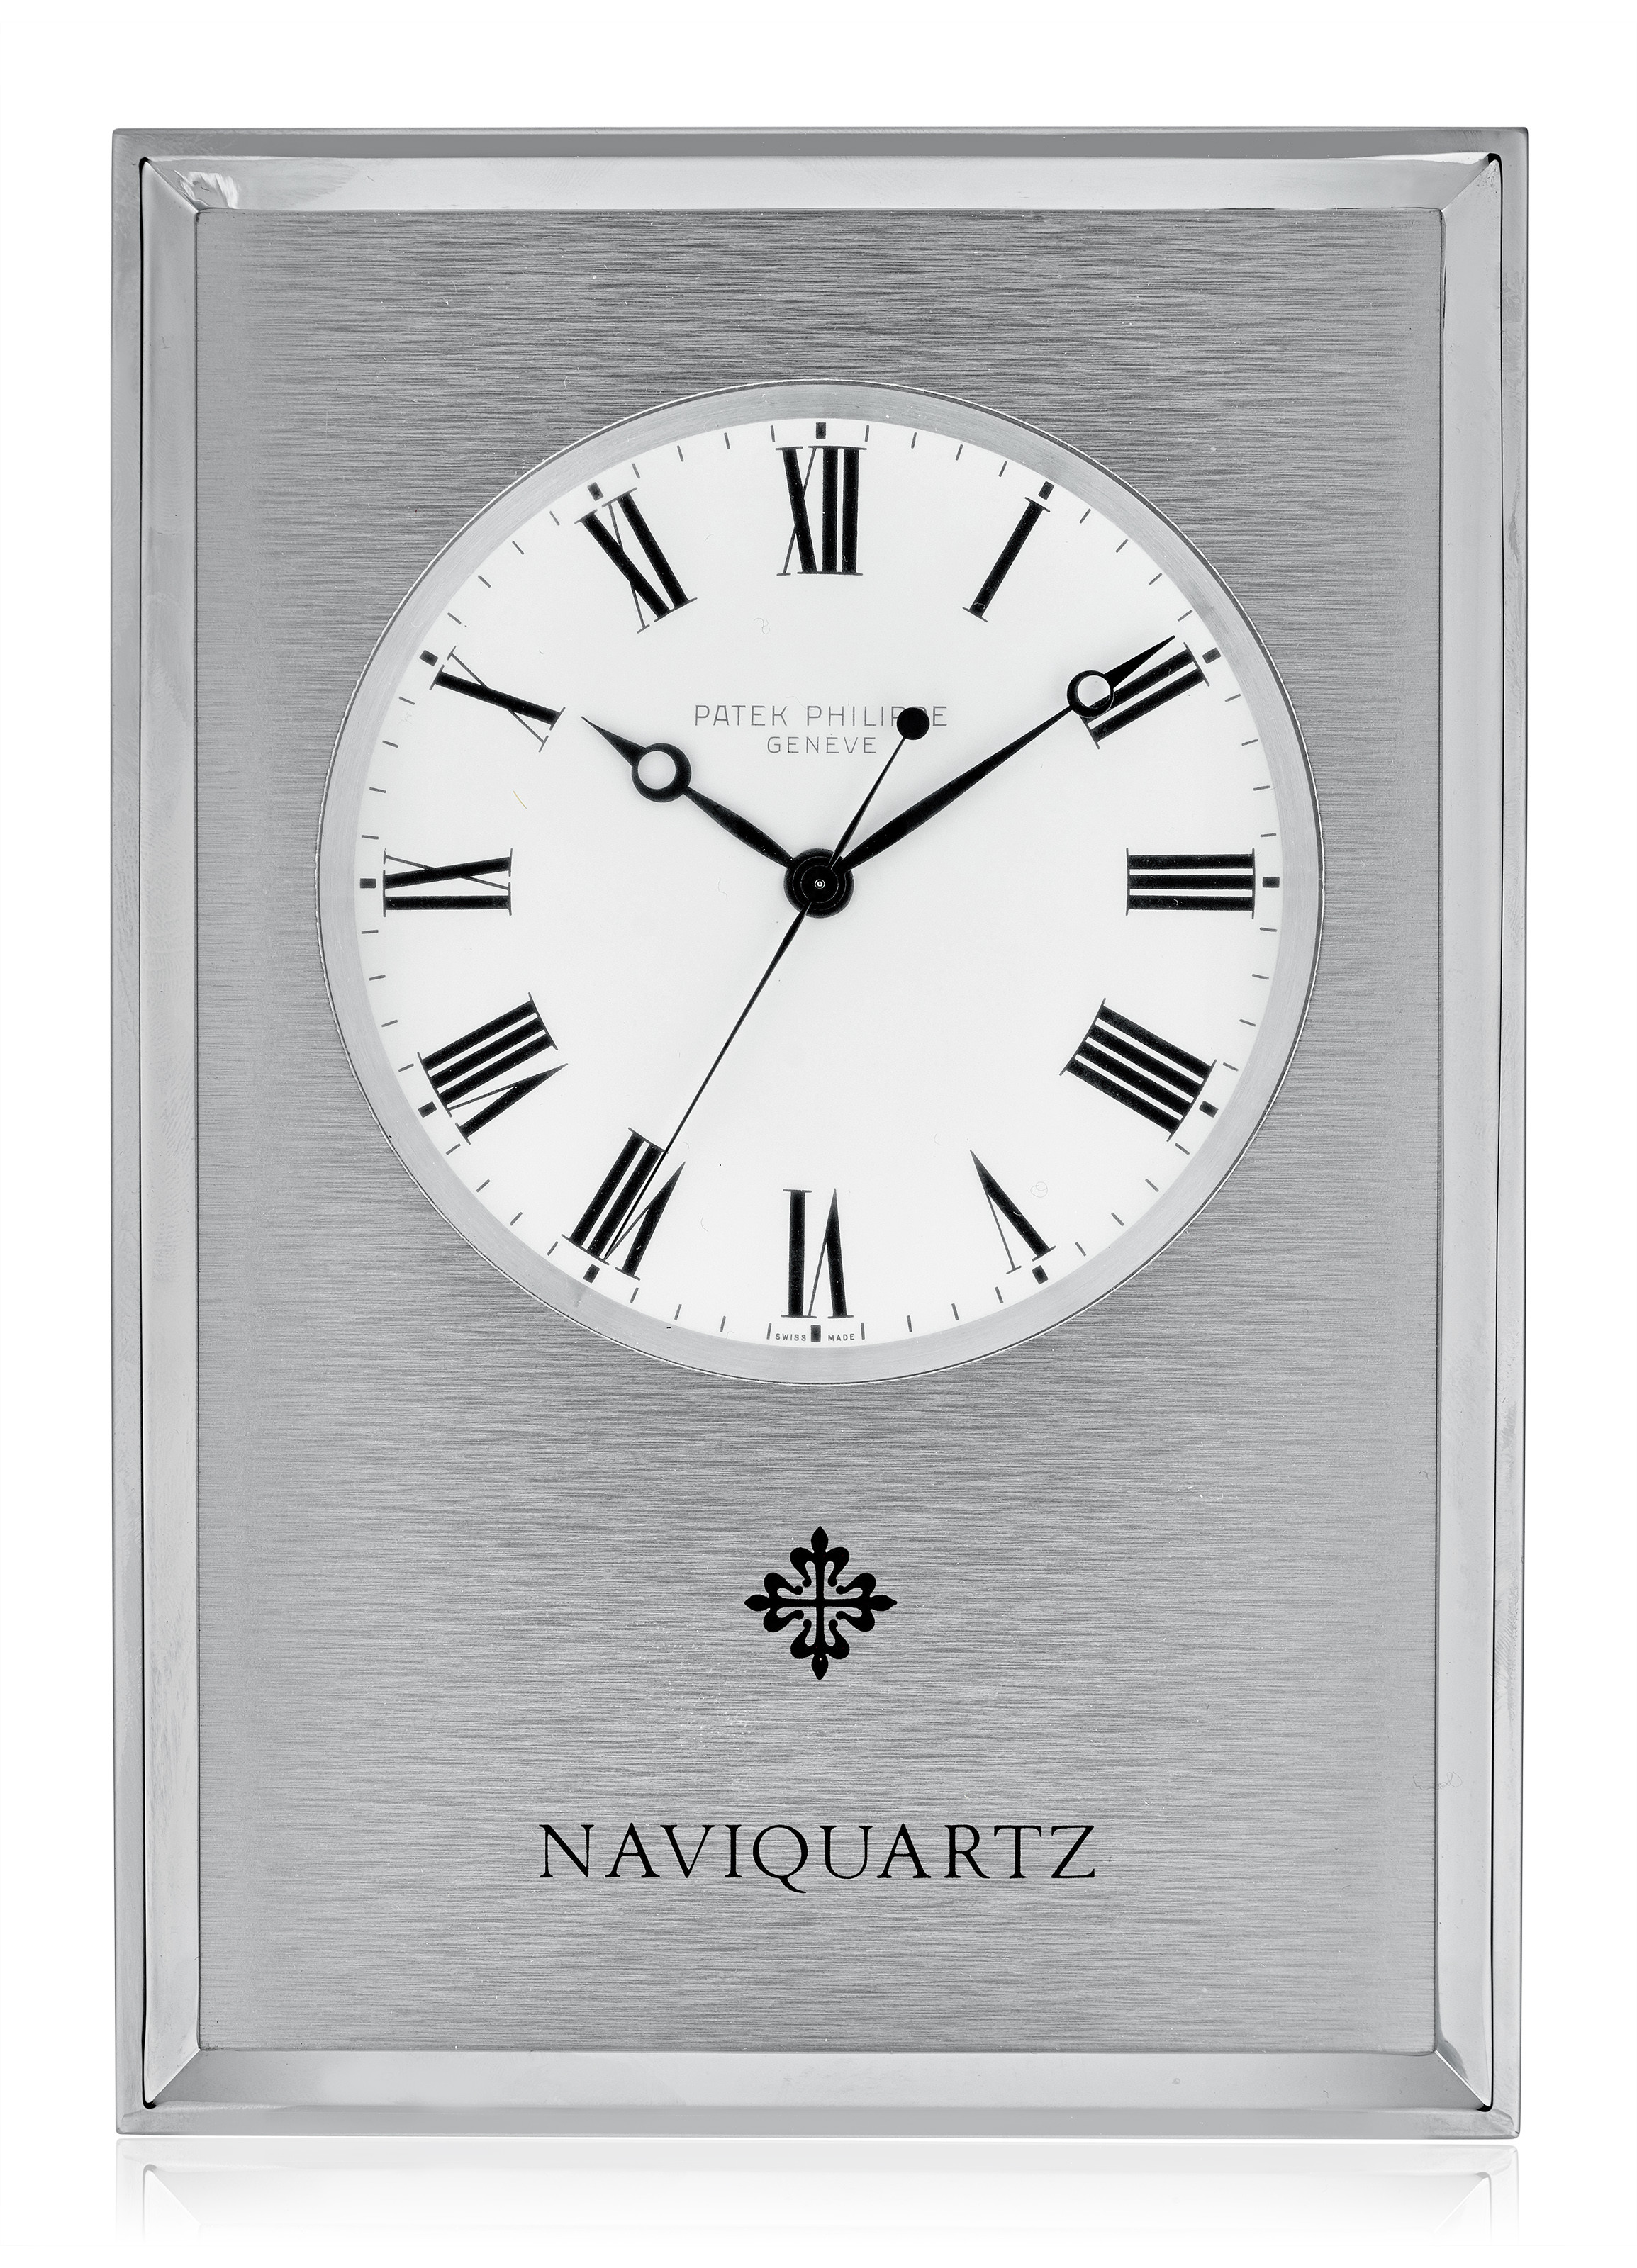 patek philippe  naviquartz desk clock with white dial  ref